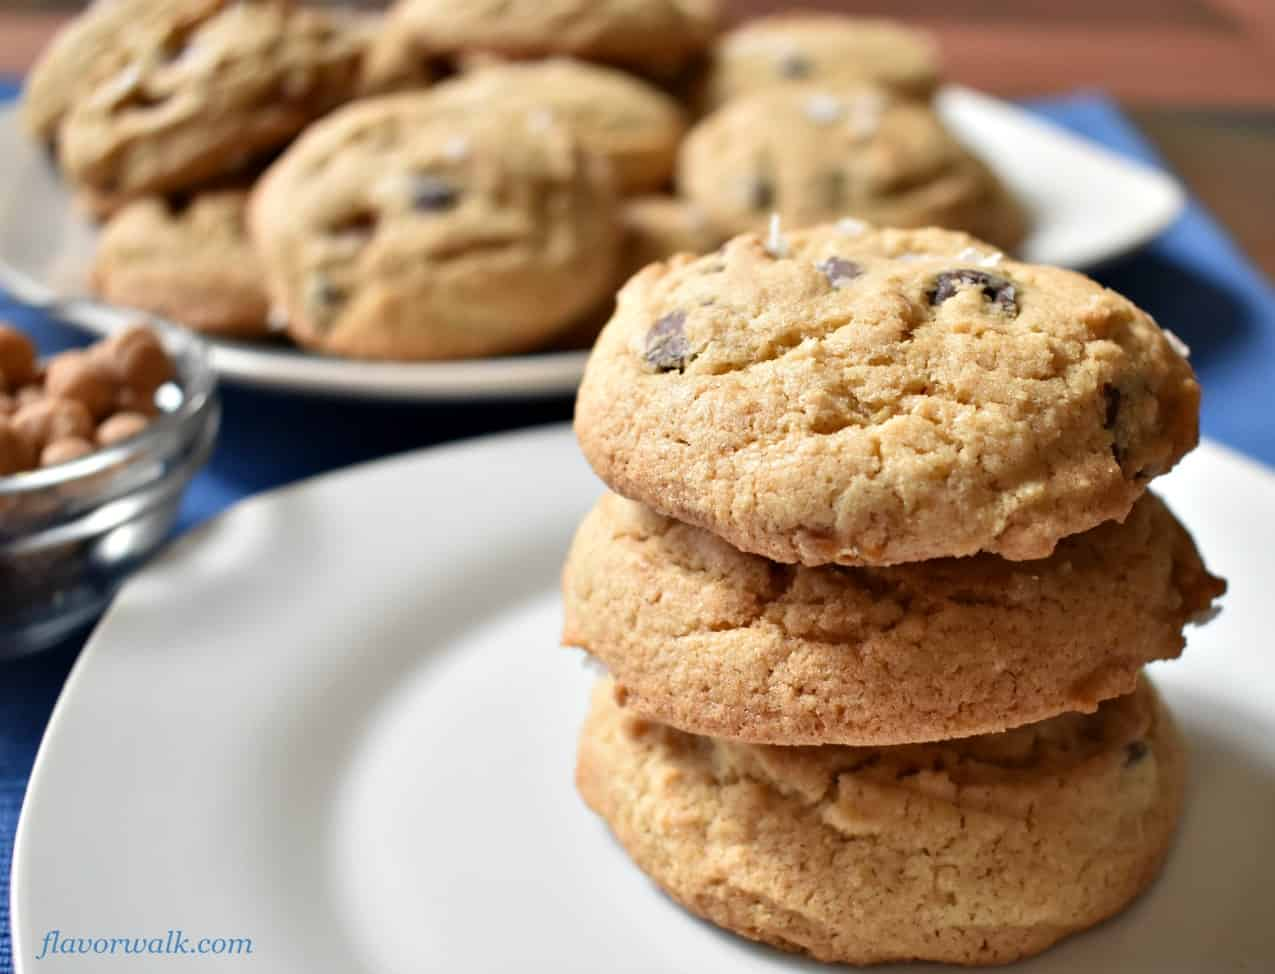 Salted Caramel Chocolate Chip Cookies get their rich flavor from caramel bits and semisweet chocolate chips. The sea salt, sprinkled on top, complements the richness with a salty bite!